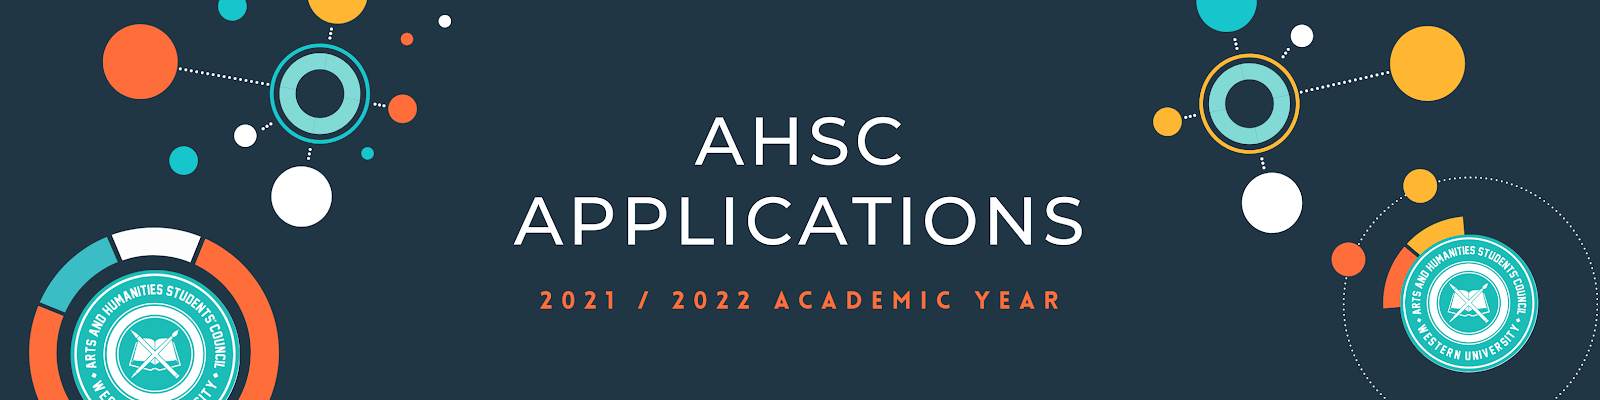 AHSC Applications Banner.png